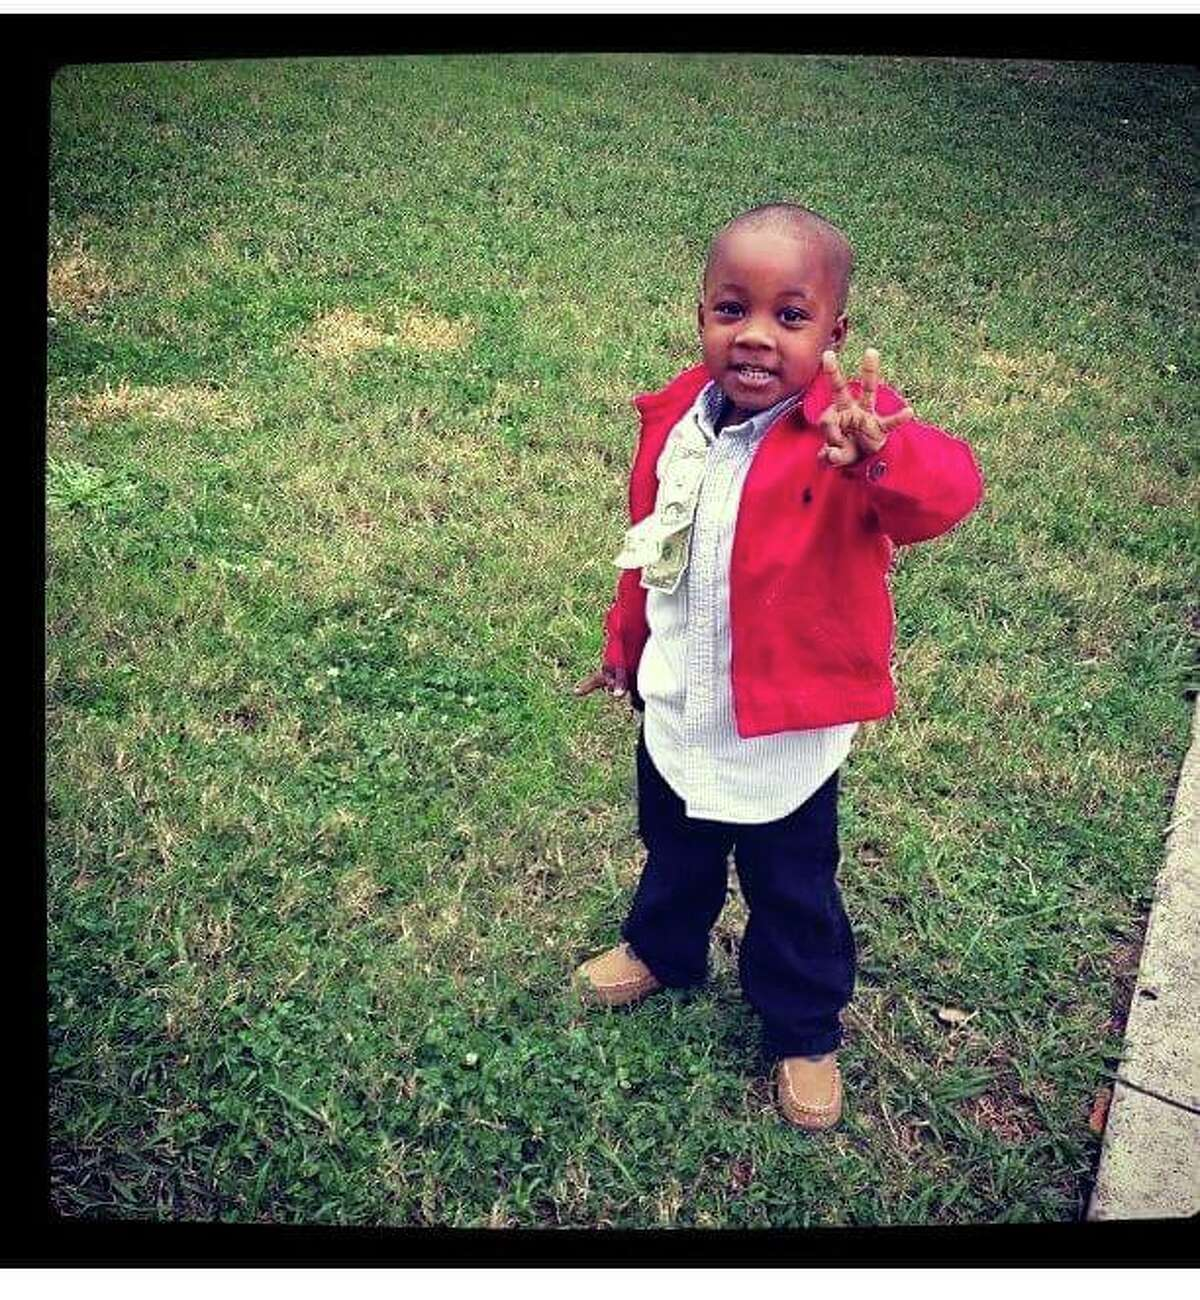 Relatives say 4-year-old Codrick Beal was at a babysitter's house when he found a gun and shot himself Sunday morning, March 1, 2015.